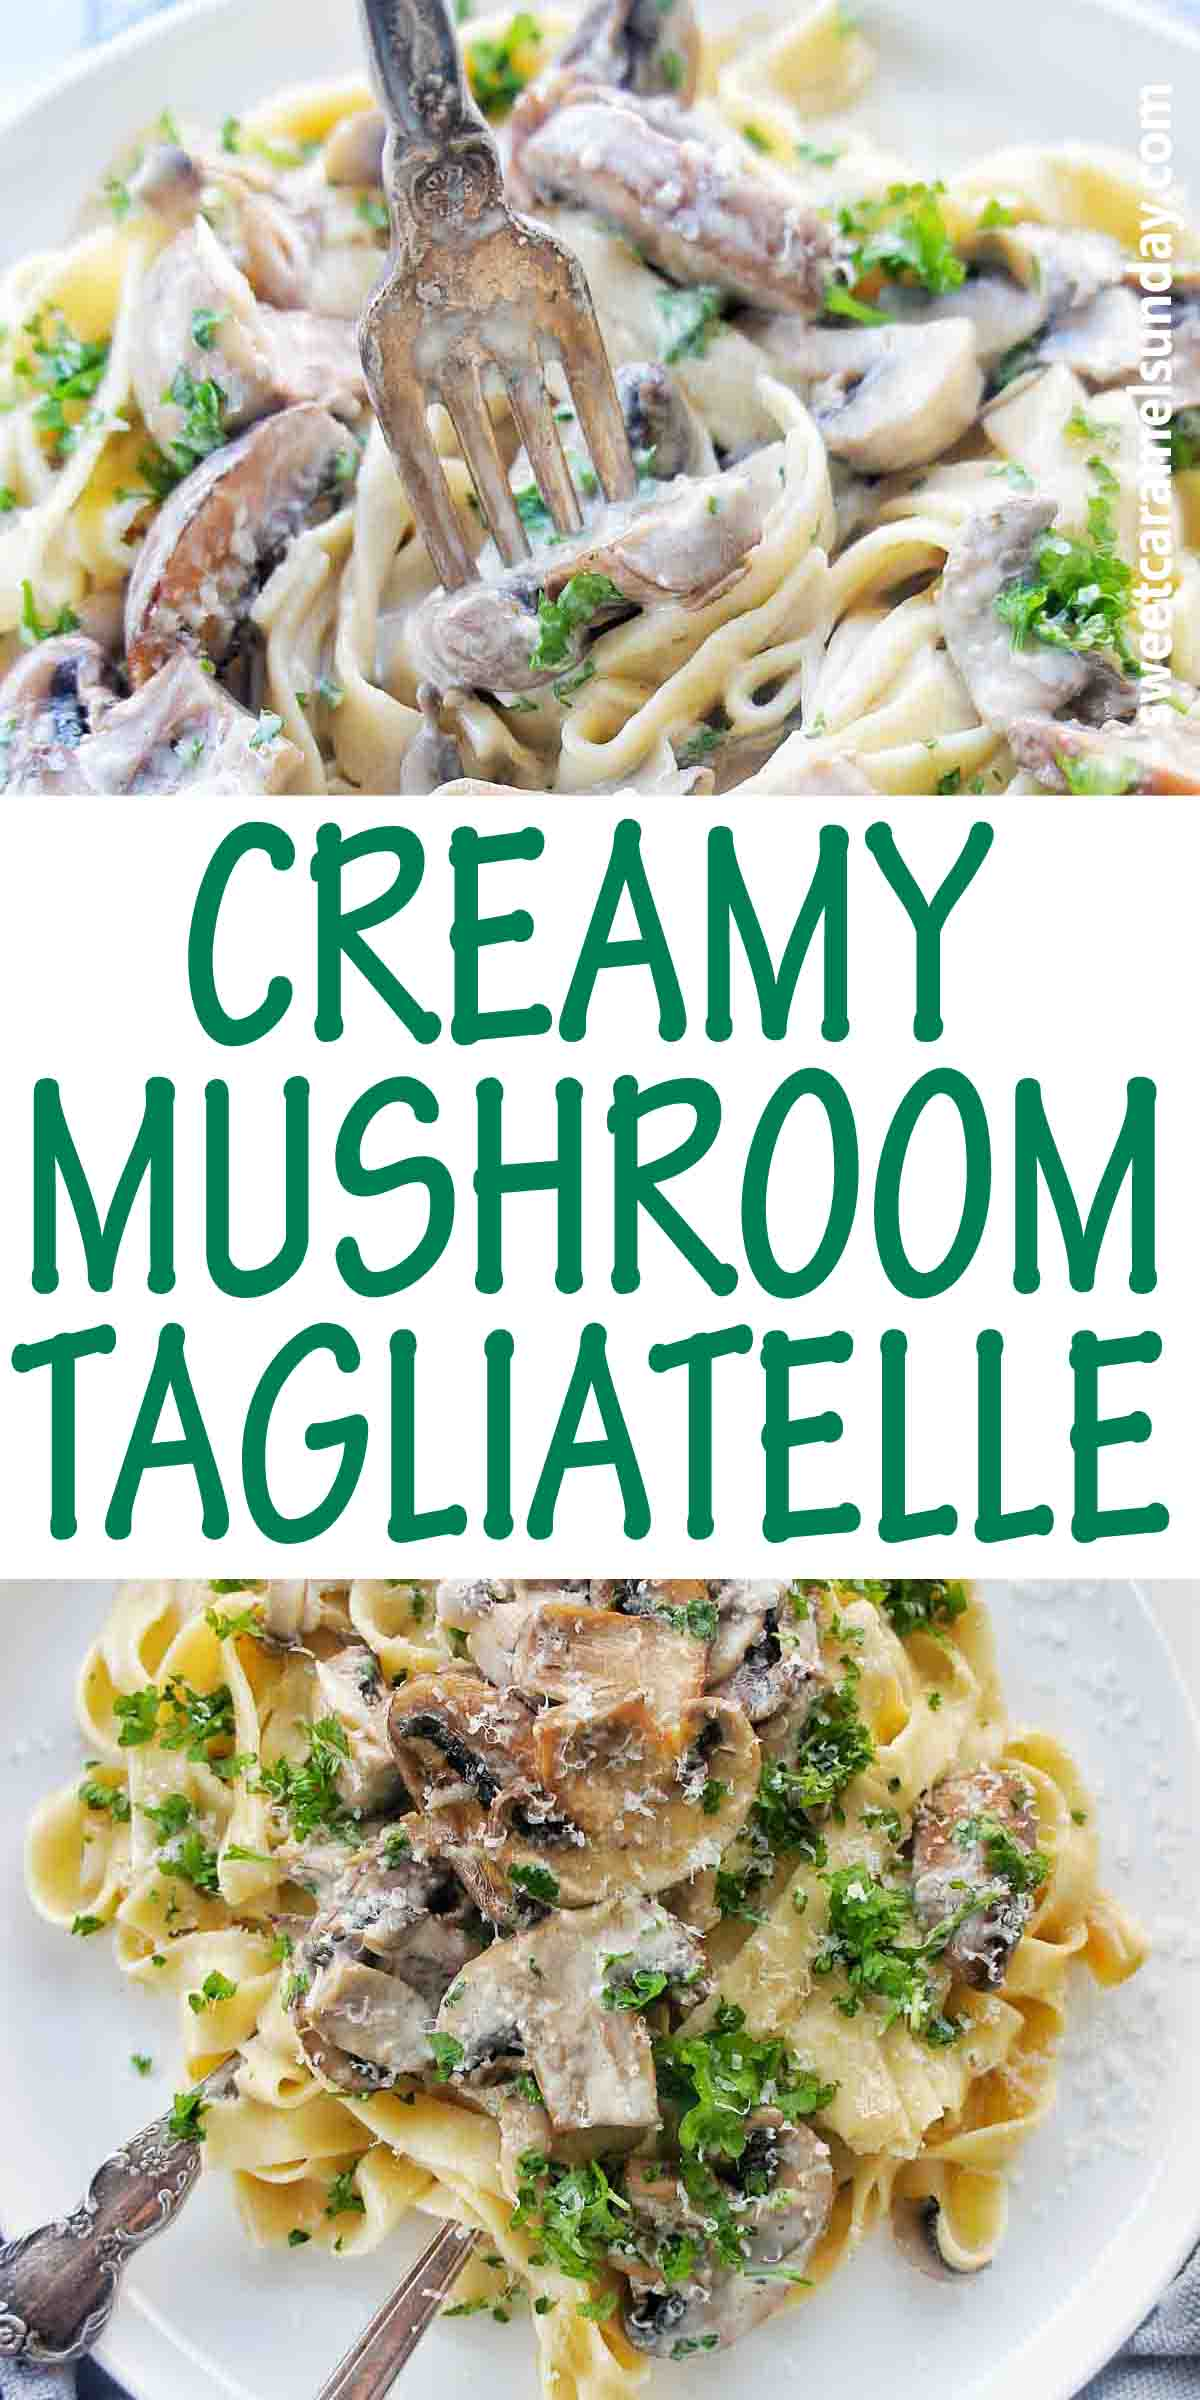 Creamy Mushroom Tagliatelle with text over lay